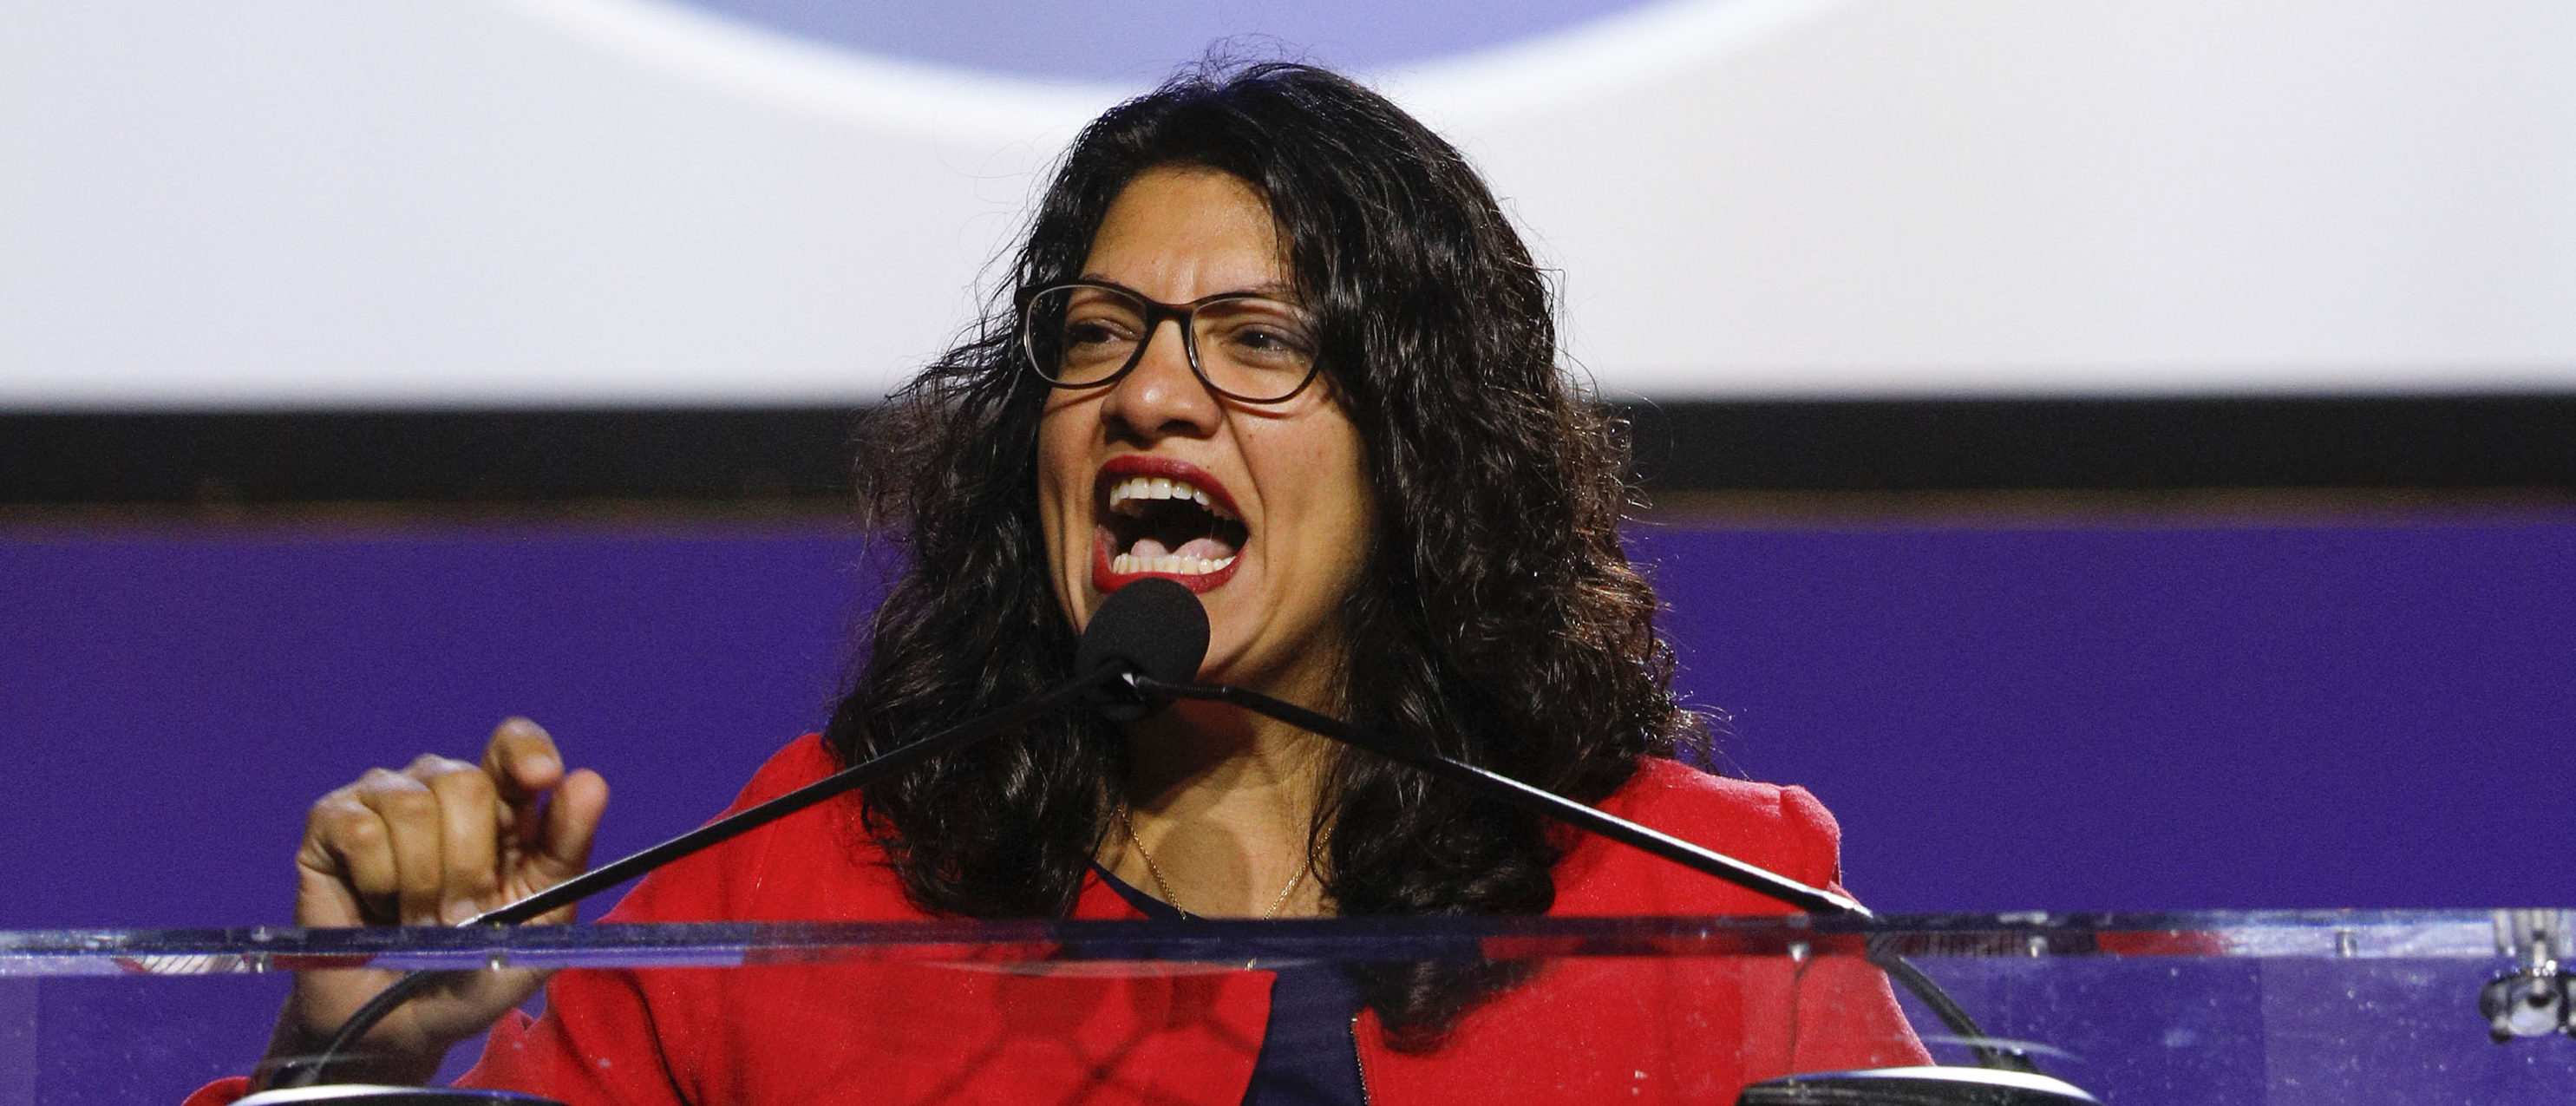 Rep. Tlaib Appears To Blame Israel For Israeli Teenager's Death